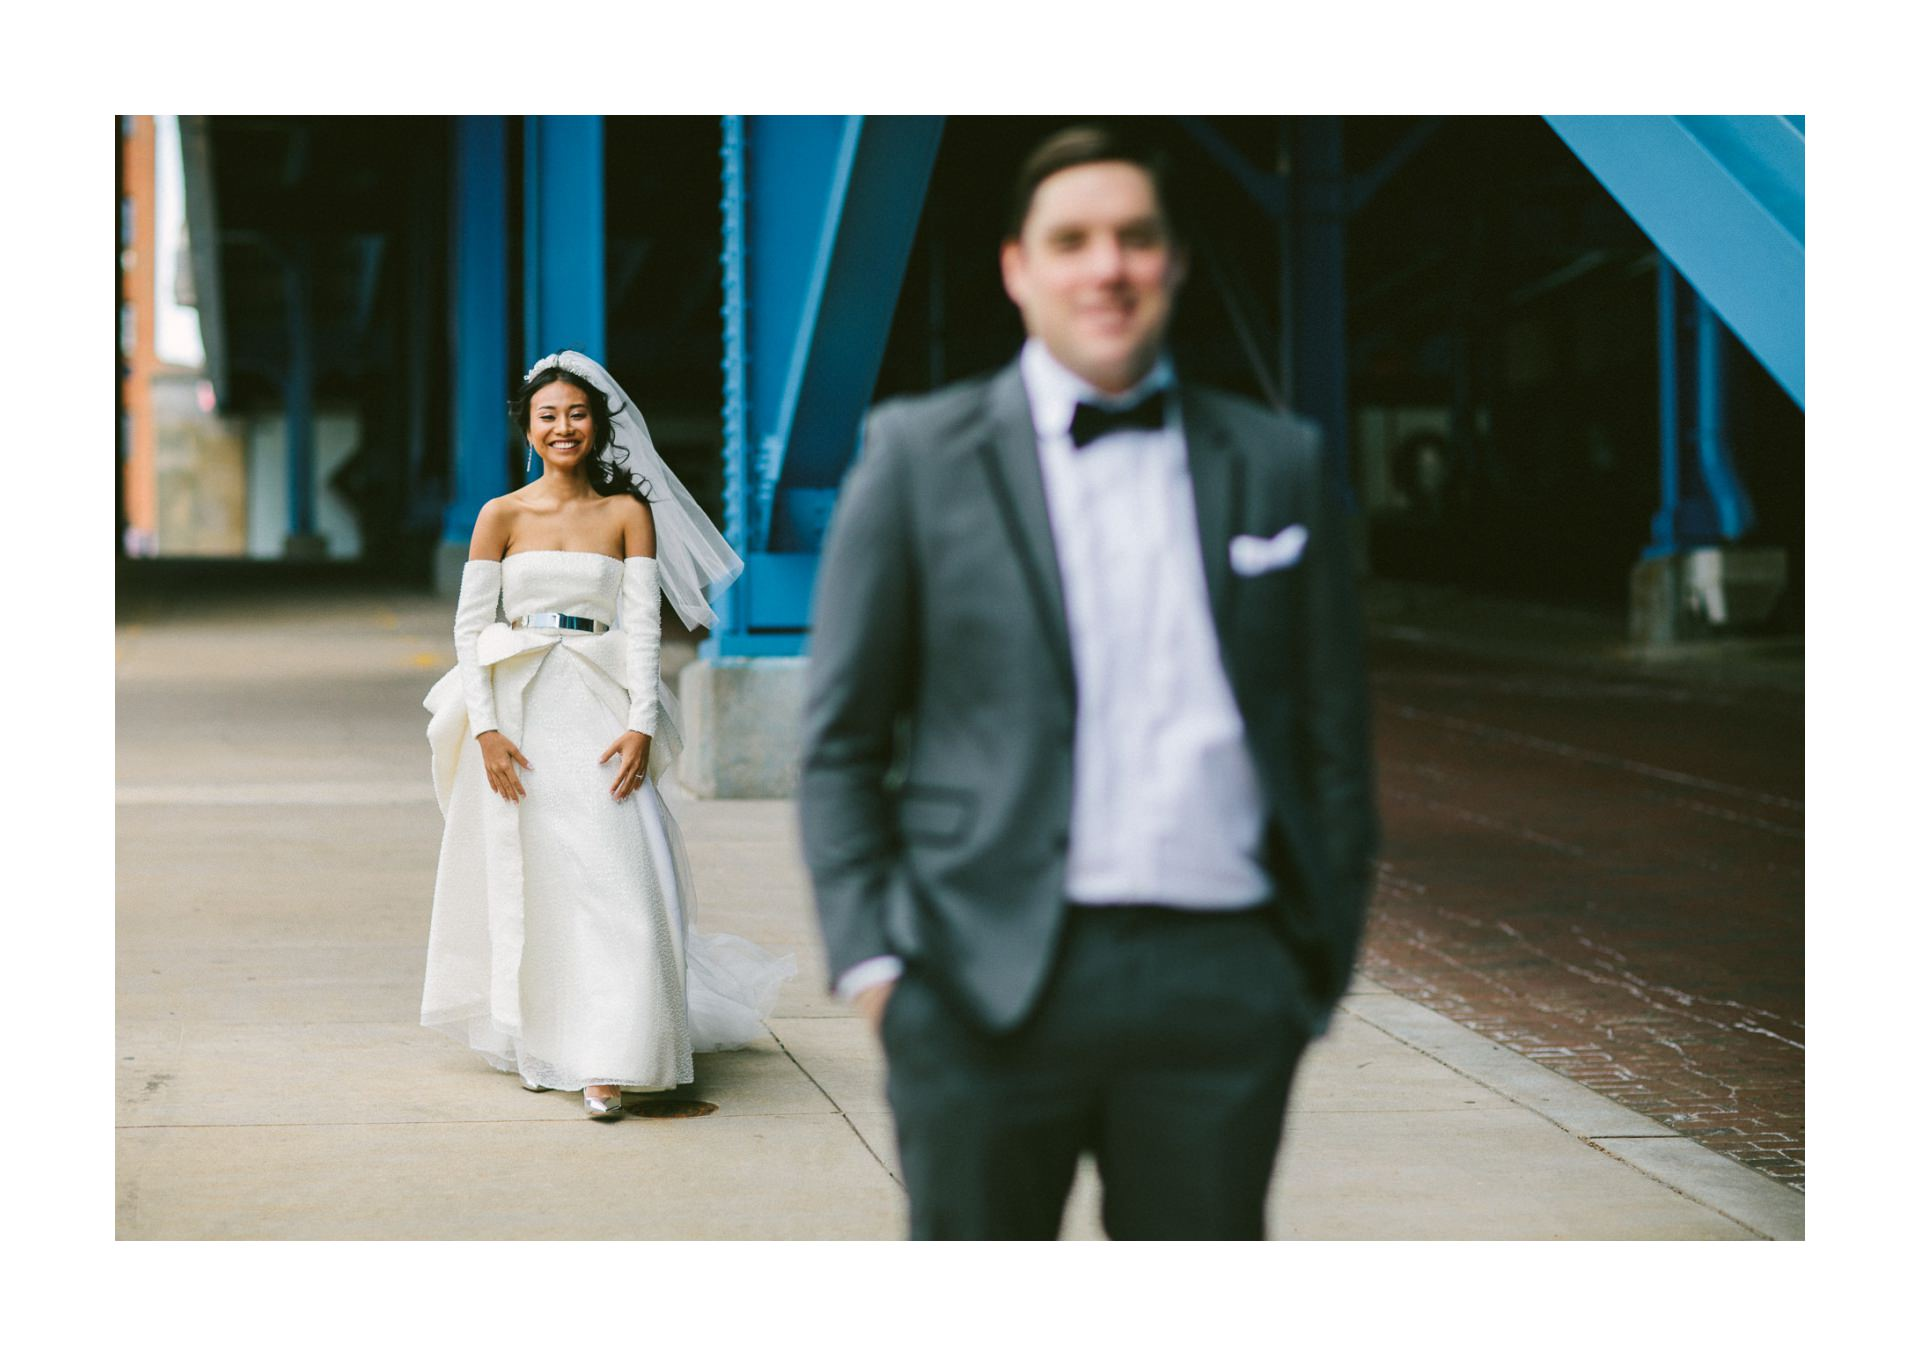 Wedding at Ernst and Young Rooftop in Downtown Cleveland 1 19.jpg